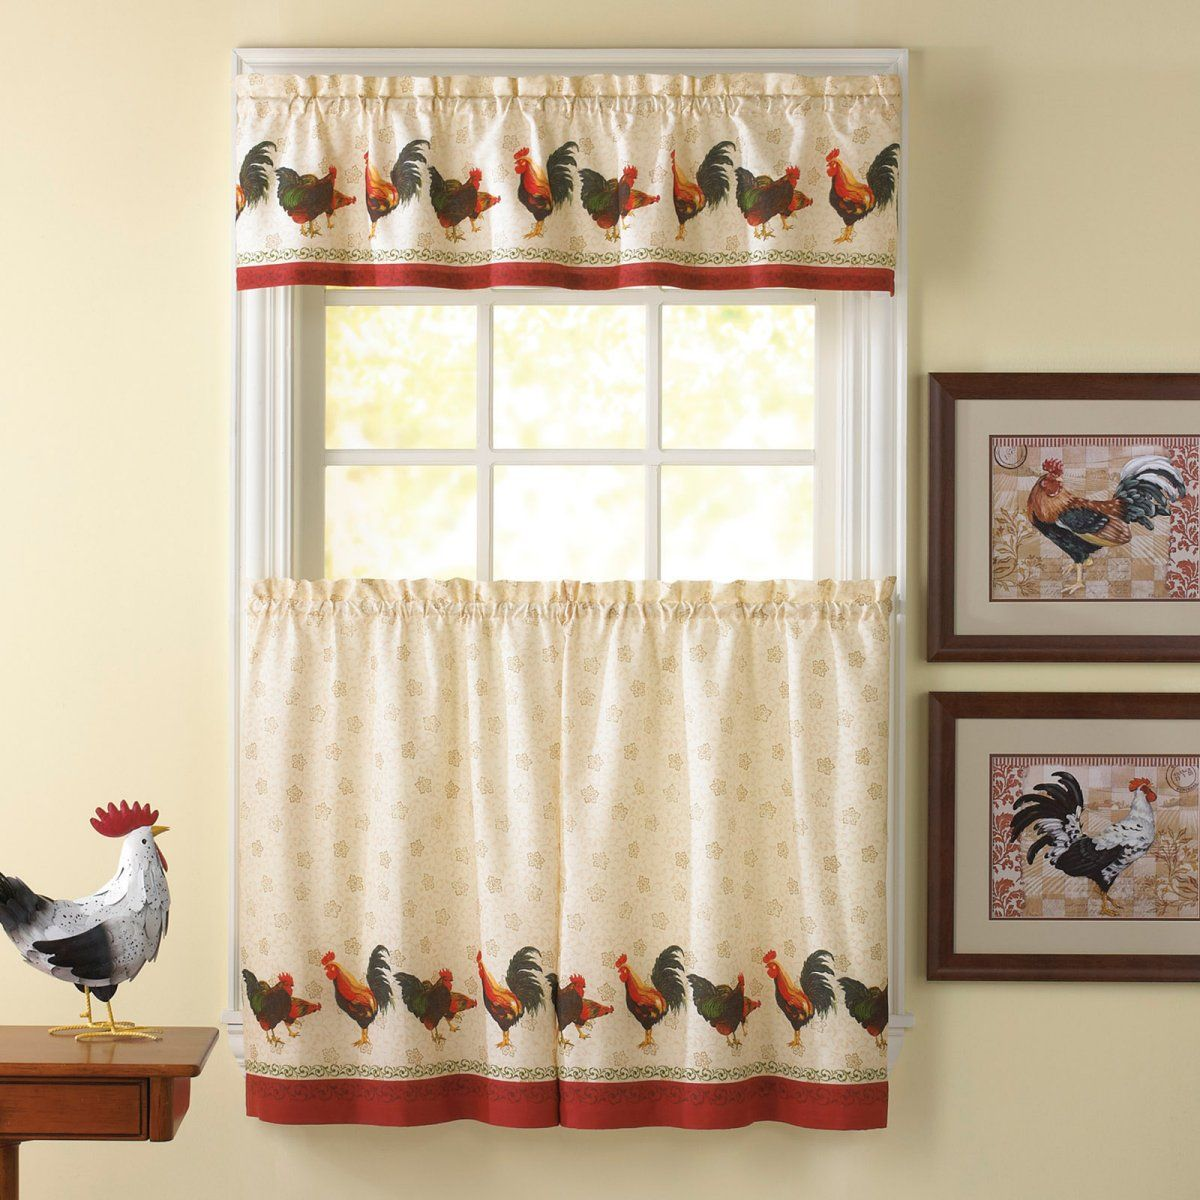 Delightful Awesome Kitchen Curtains Sets #1 Country Rooster Kitchen Curtain Valance